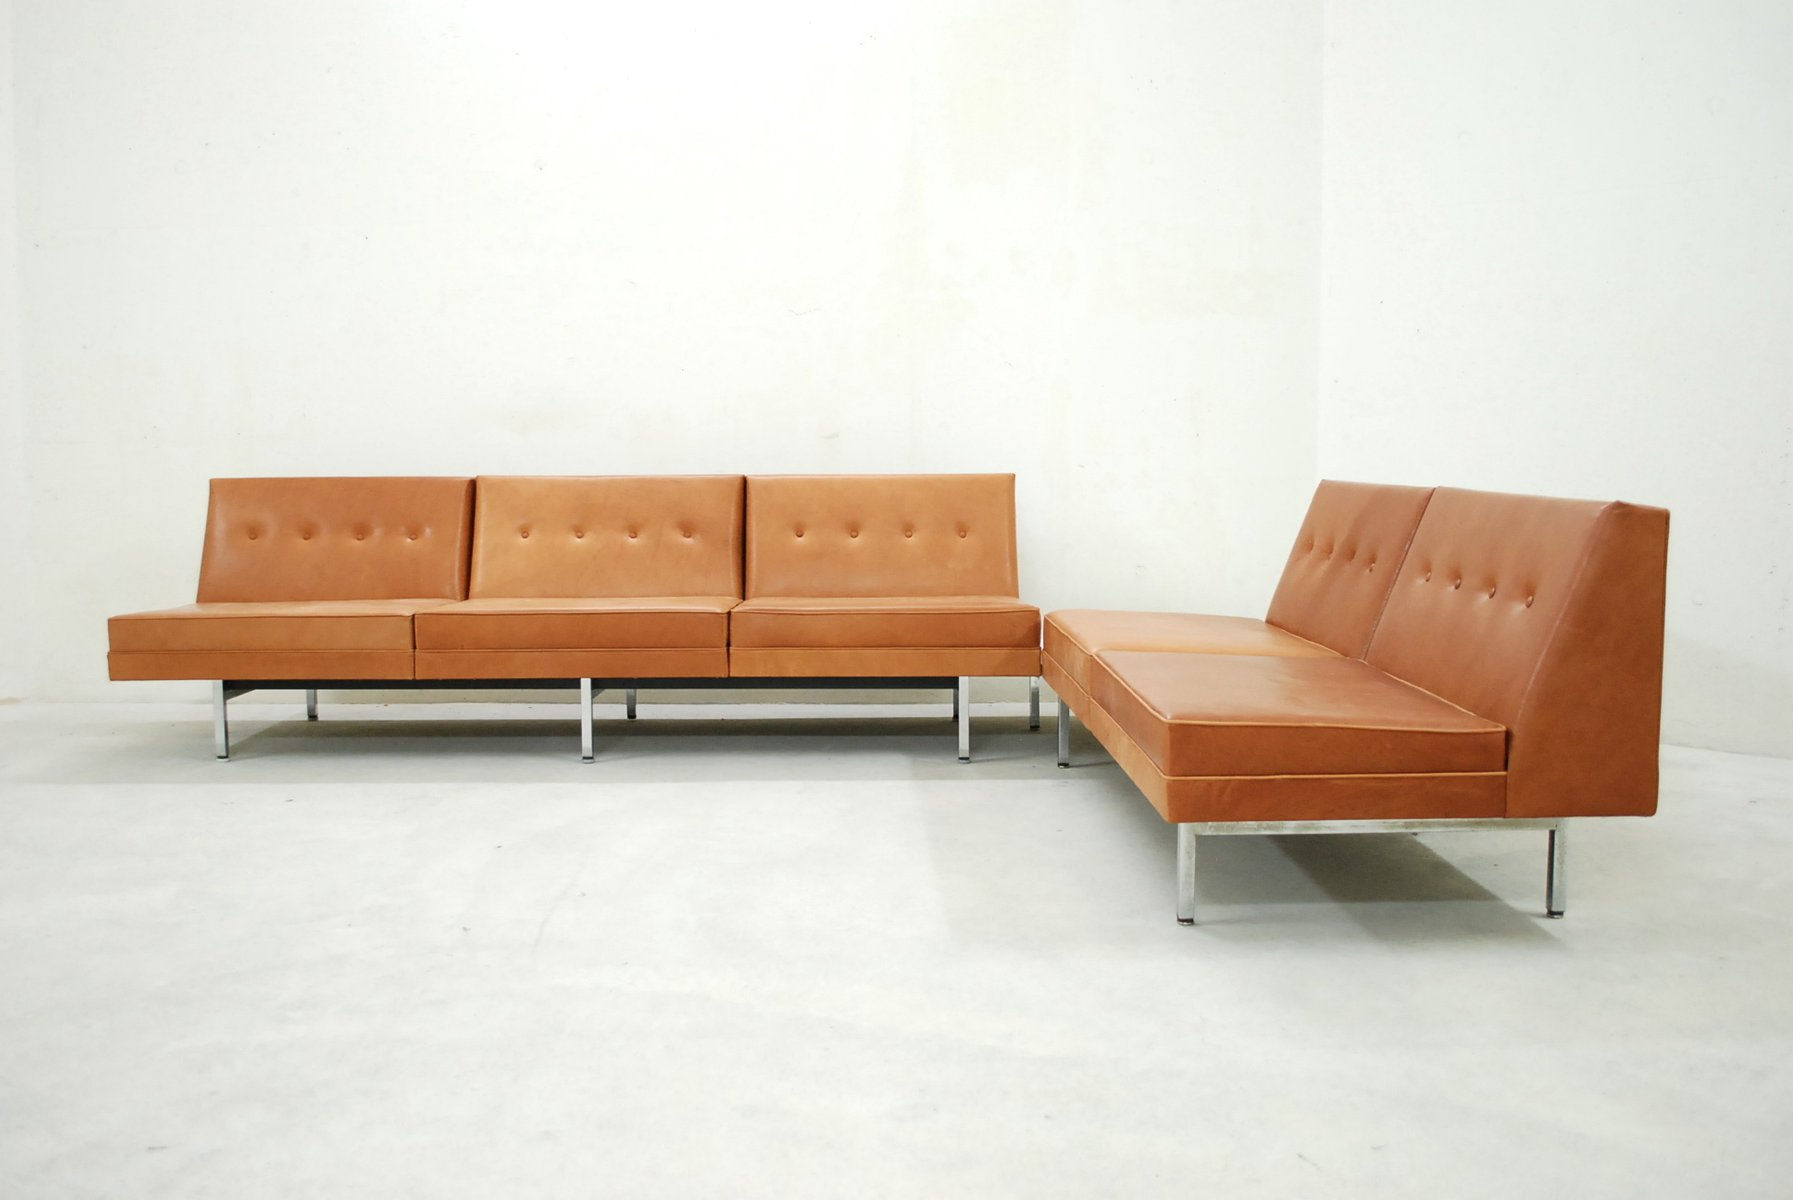 Cognac Leather Modular Sofa Set By George Nelson For Herman Miller, 1968